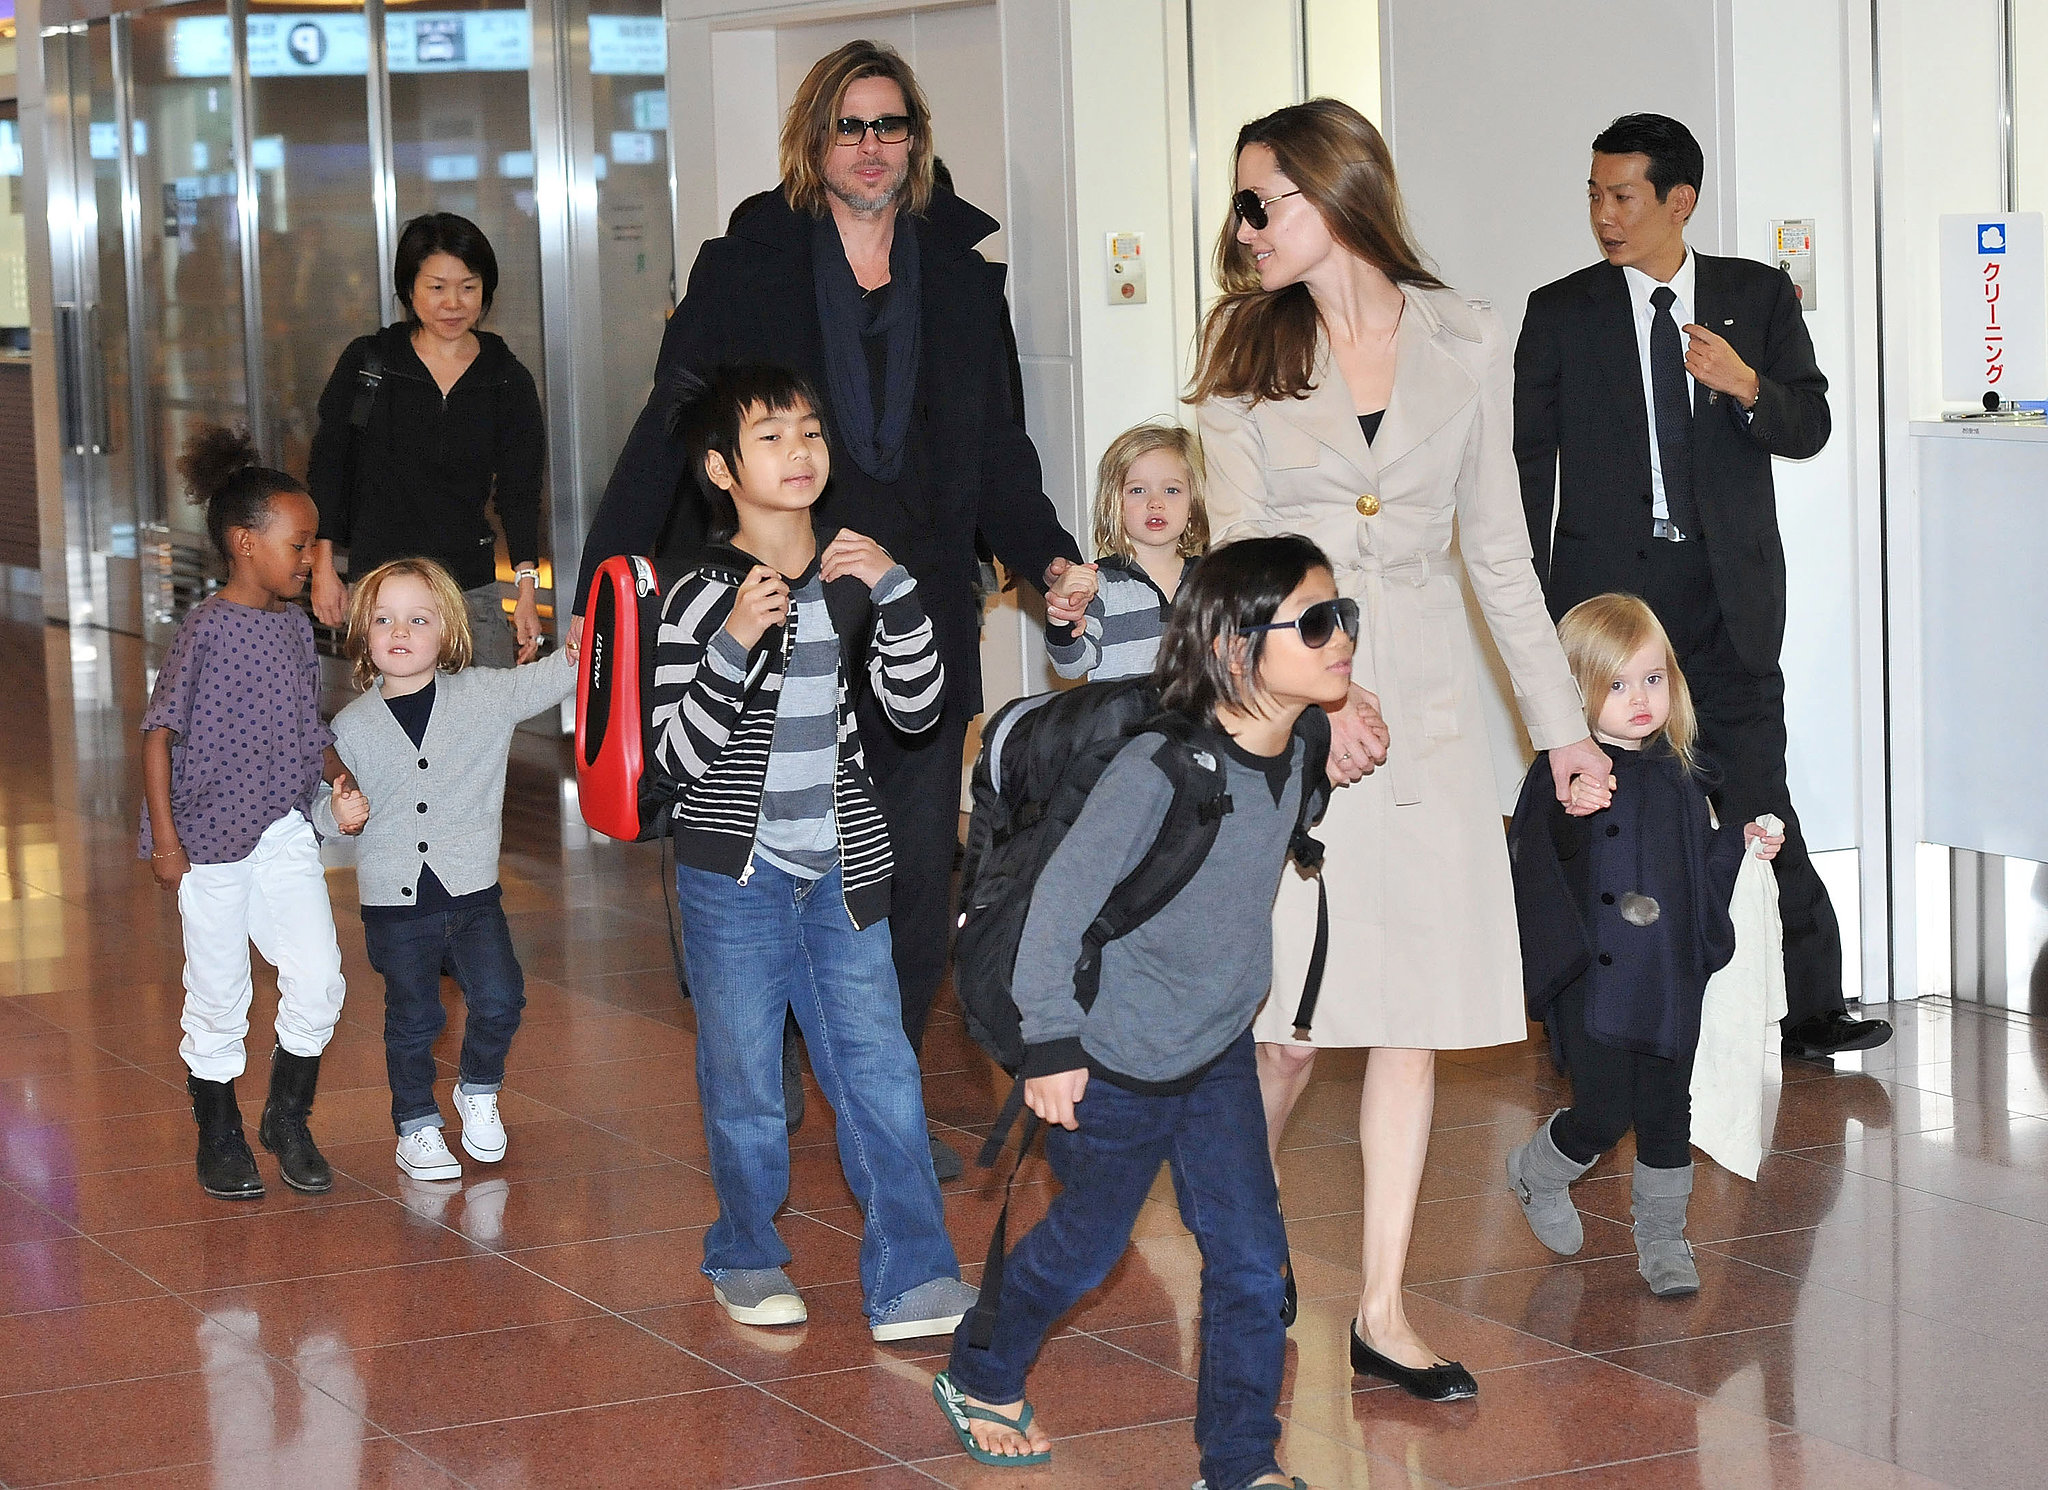 Knox Jolie-Pitt and Vivienne Jolie-Pitt arrived in Japan with the rest of the family in November 2011.